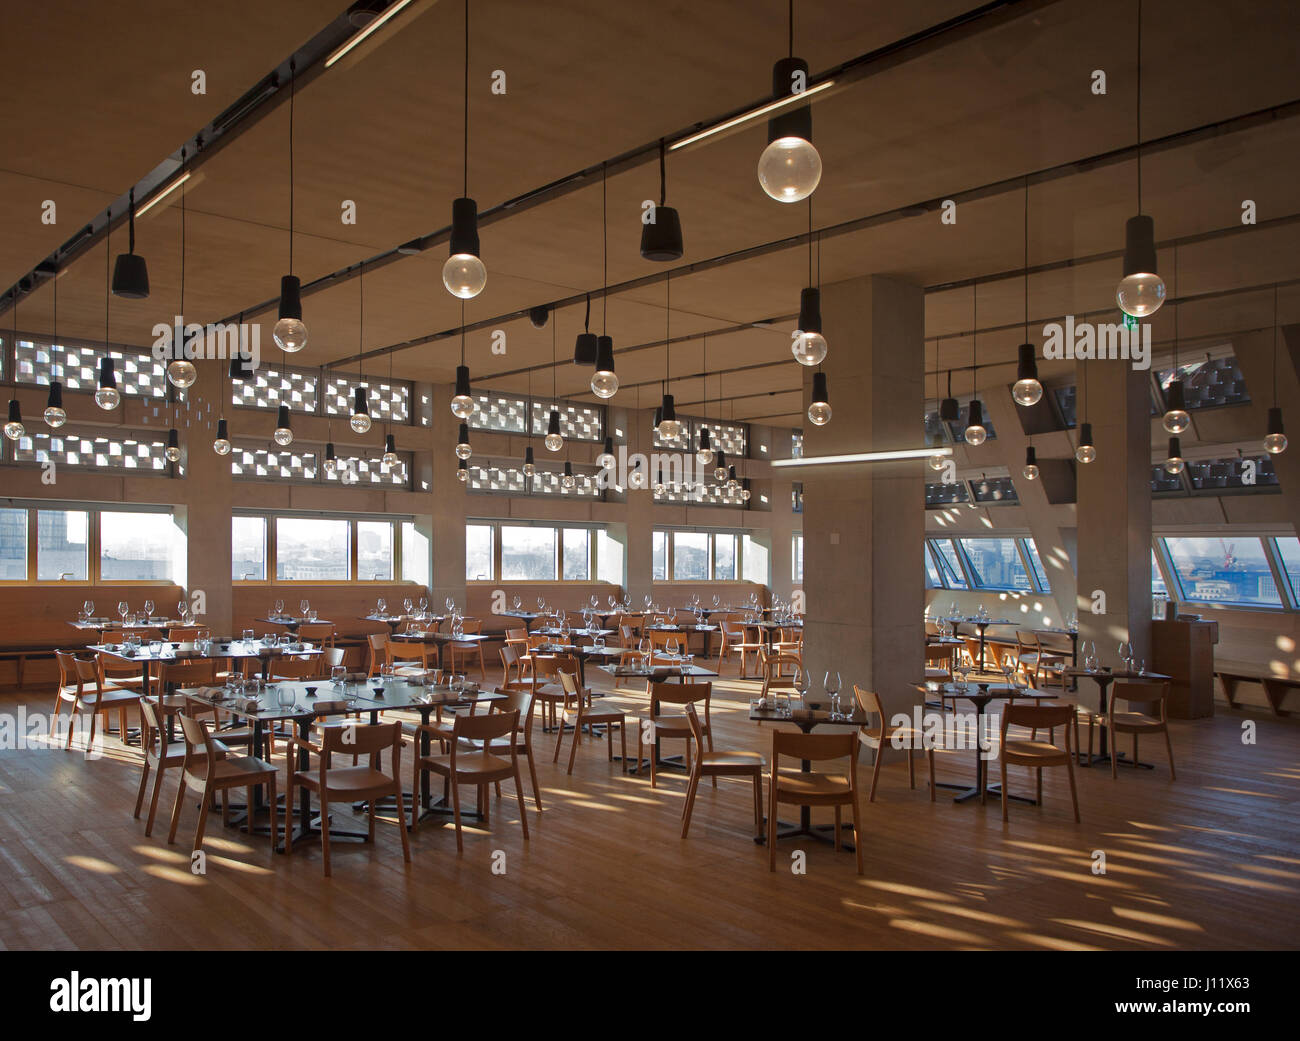 Tate Modern Switch House Restaurant taken in daylight with no customers present, United Kingdom, London - Stock Image